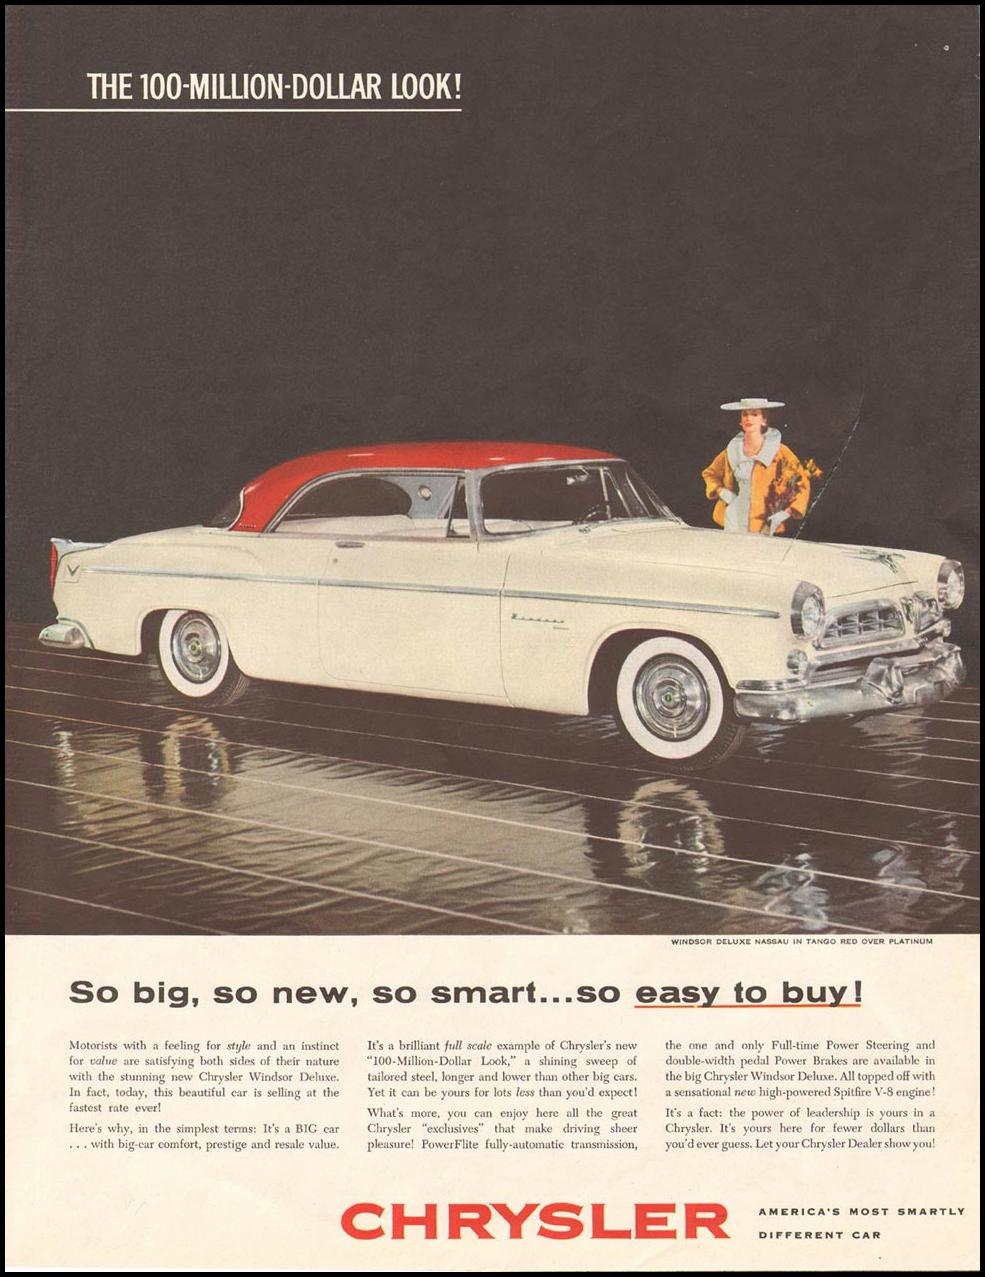 CHRYSLER AUTOMOBILES SATURDAY EVENING POST 03/26/1955 p. 71